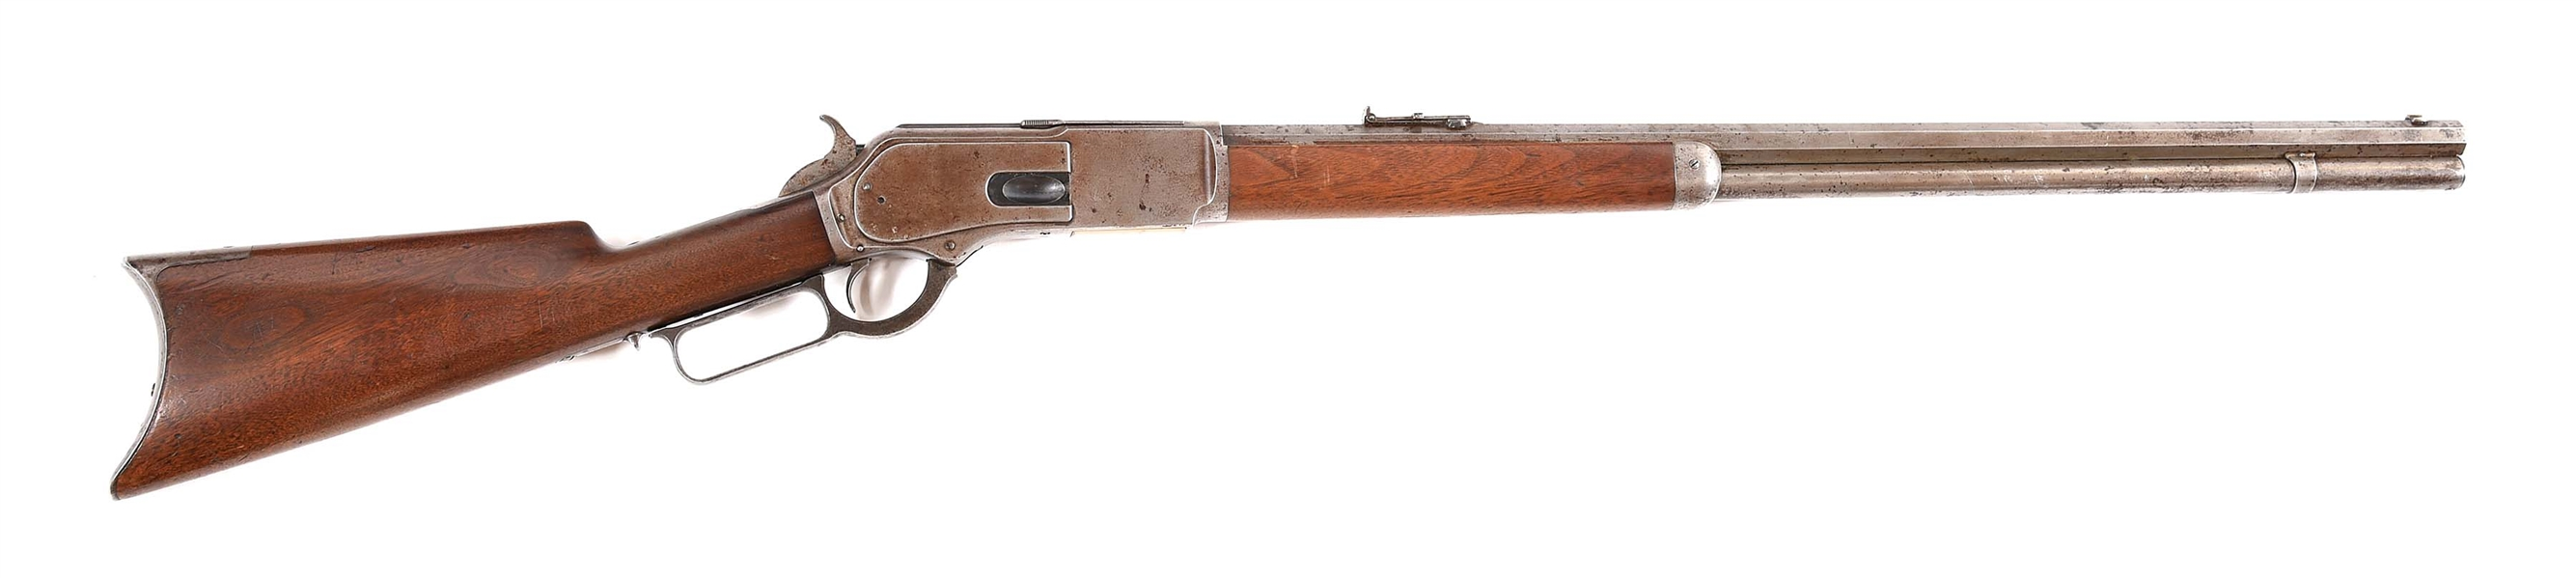 (A) WINCHESTER MODEL 1876 .45-60 LEVER ACTION RIFLE.